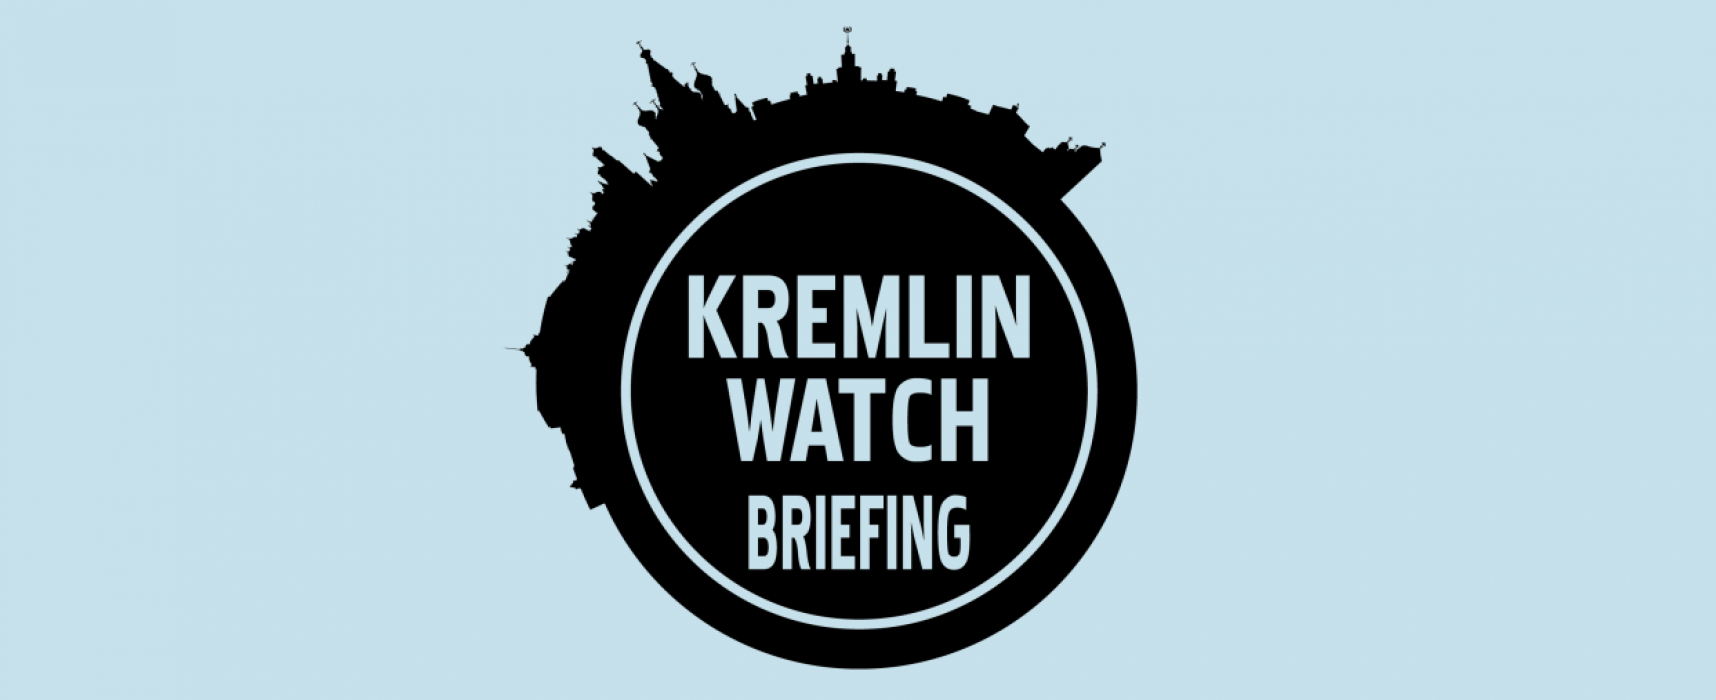 Kremlin Watch Briefing: The US Congress is proposing a bill to counter foreign interference